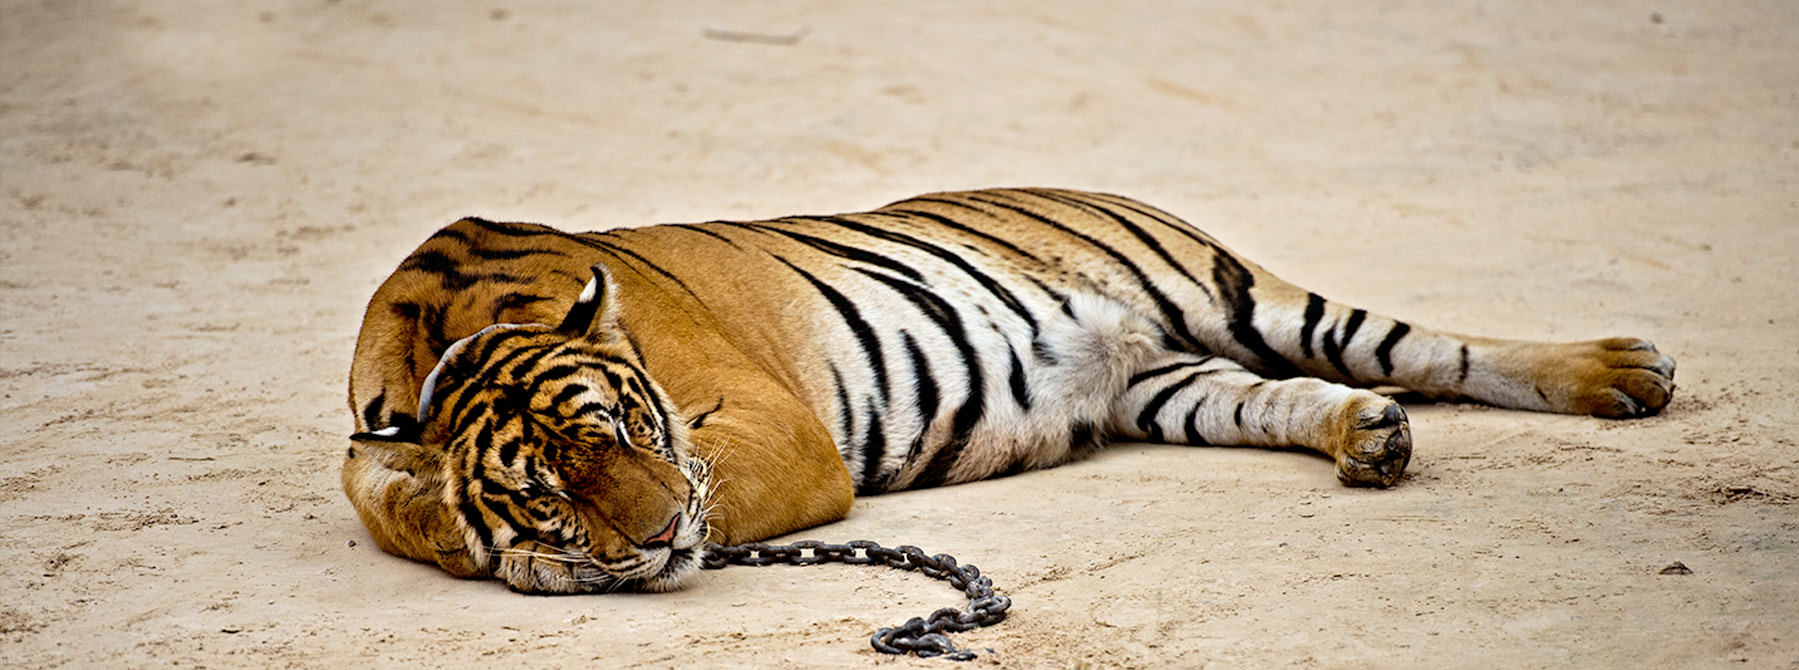 A captive Tiger Panthera tigris © James Morgan / WWF